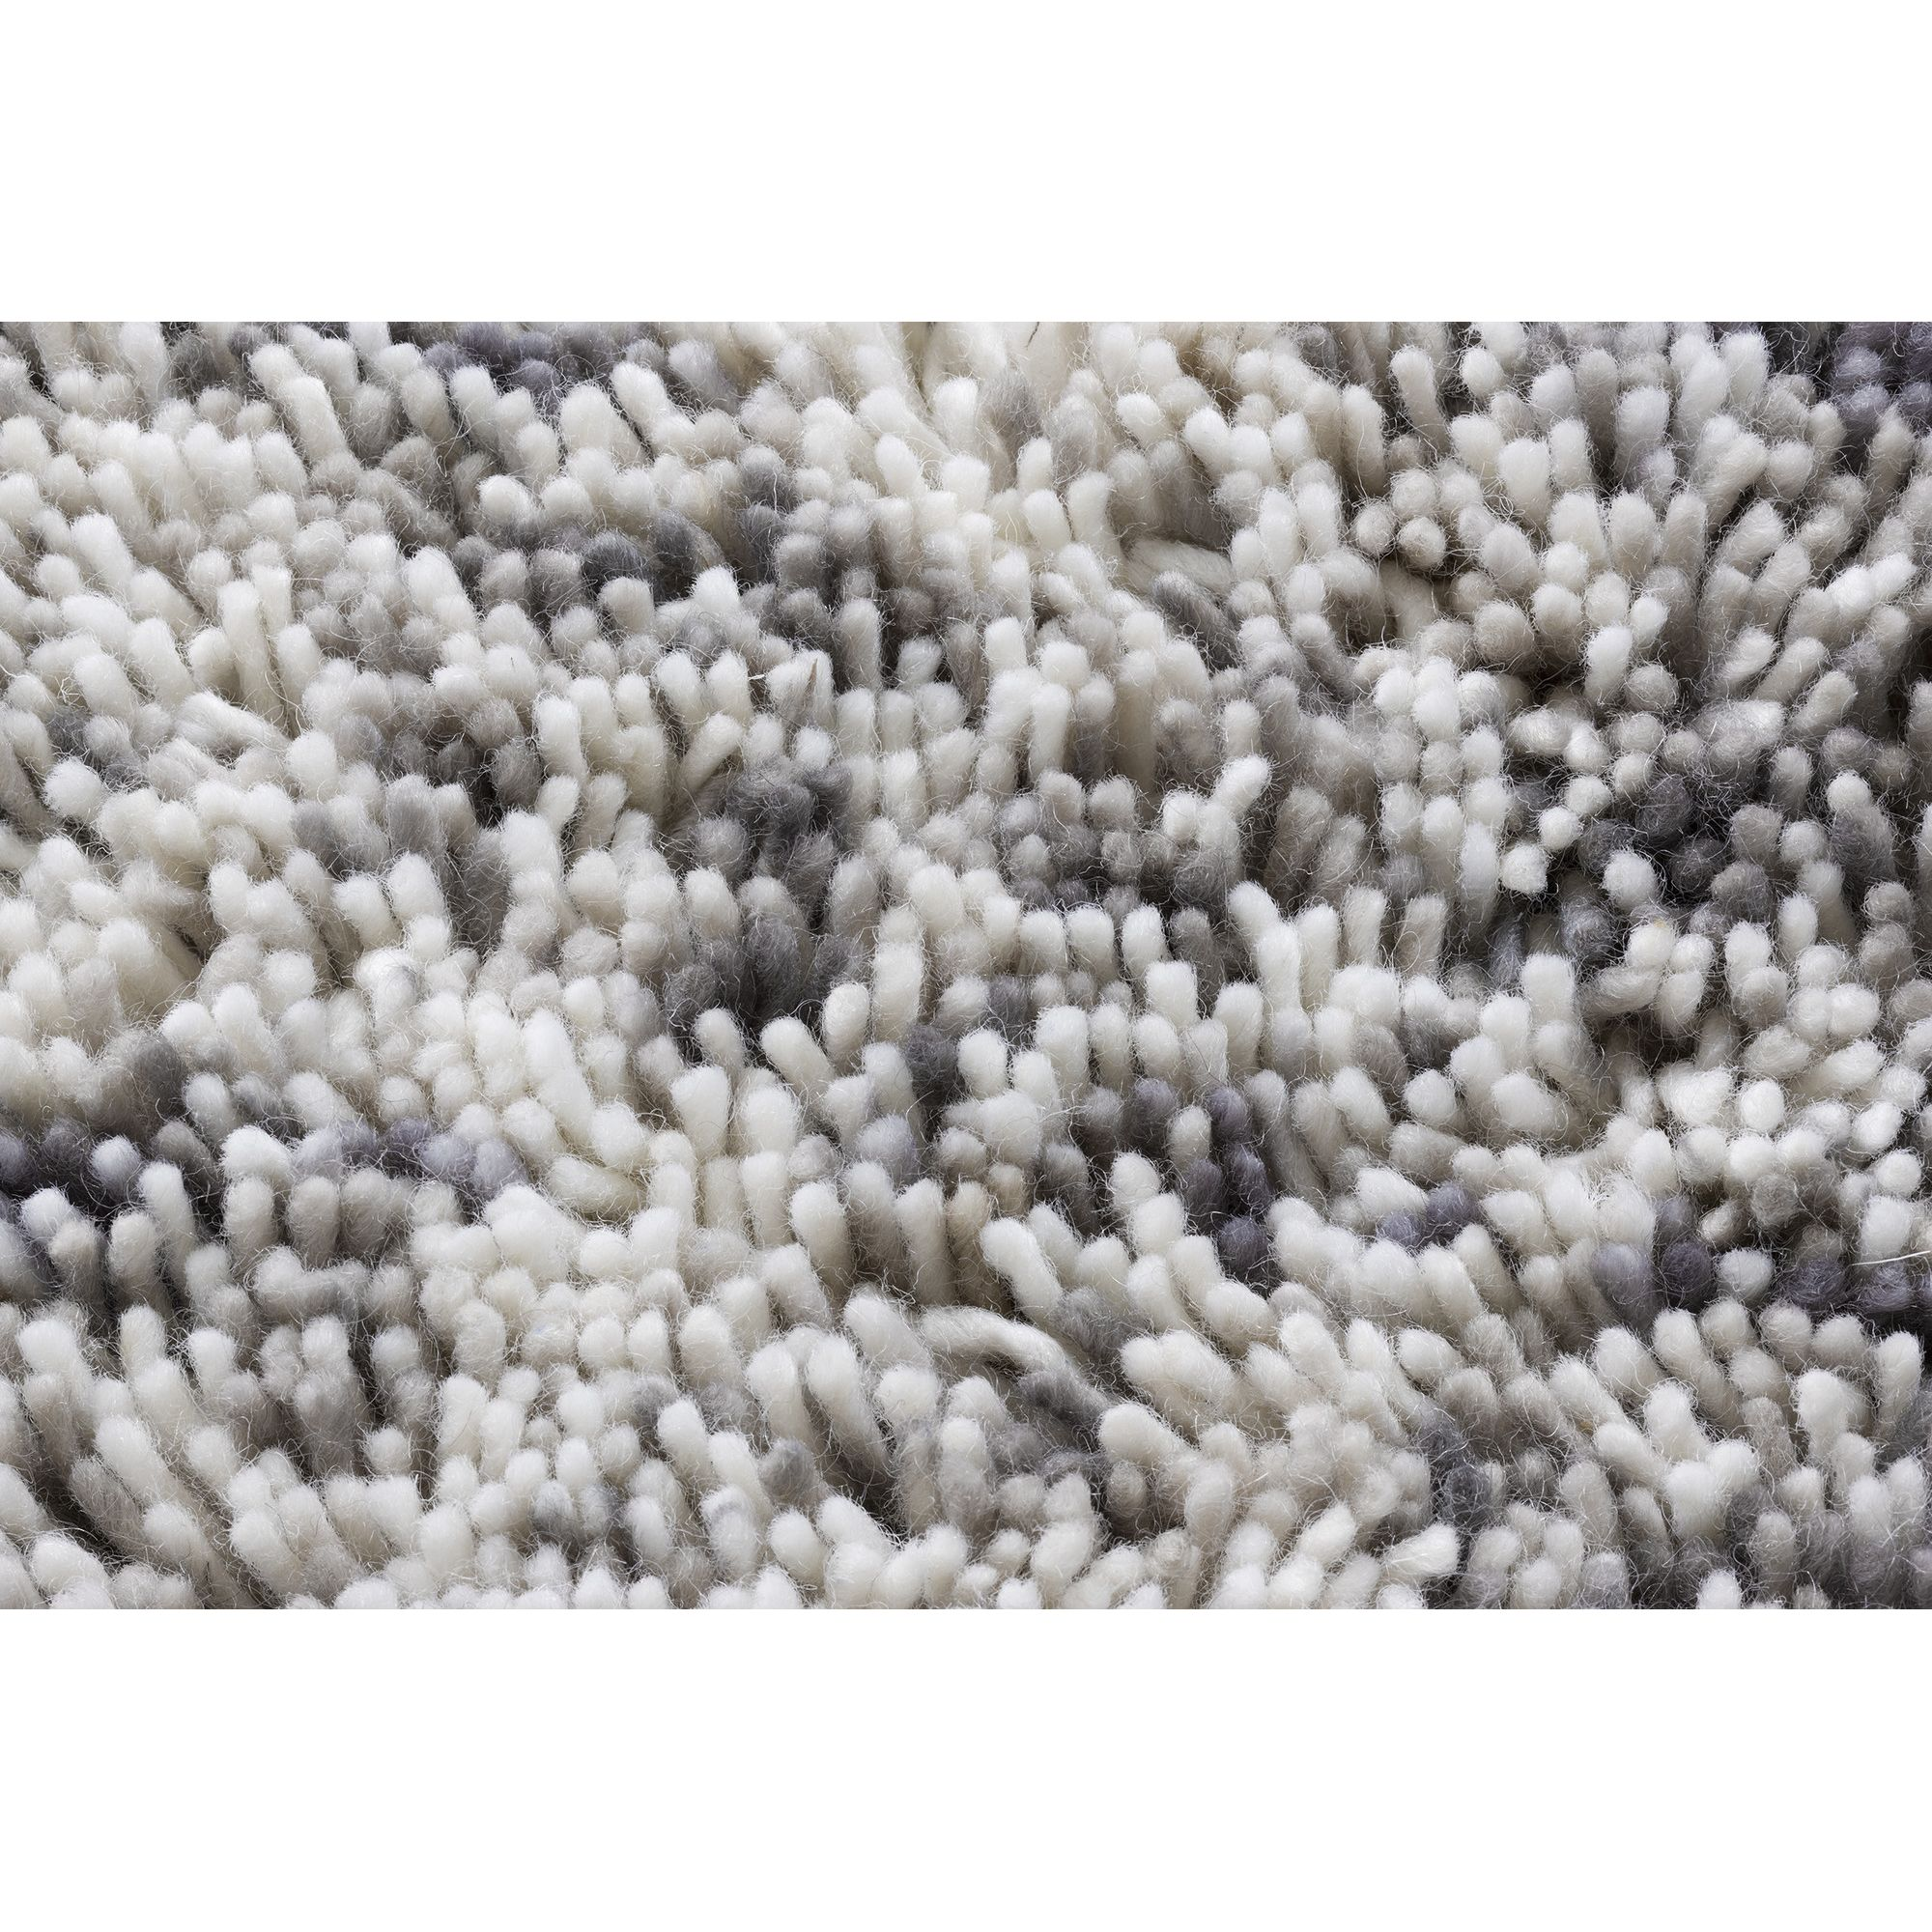 Linie Design Coral Grey Shag Rug - 240cm x 170cm at Tesco Direct